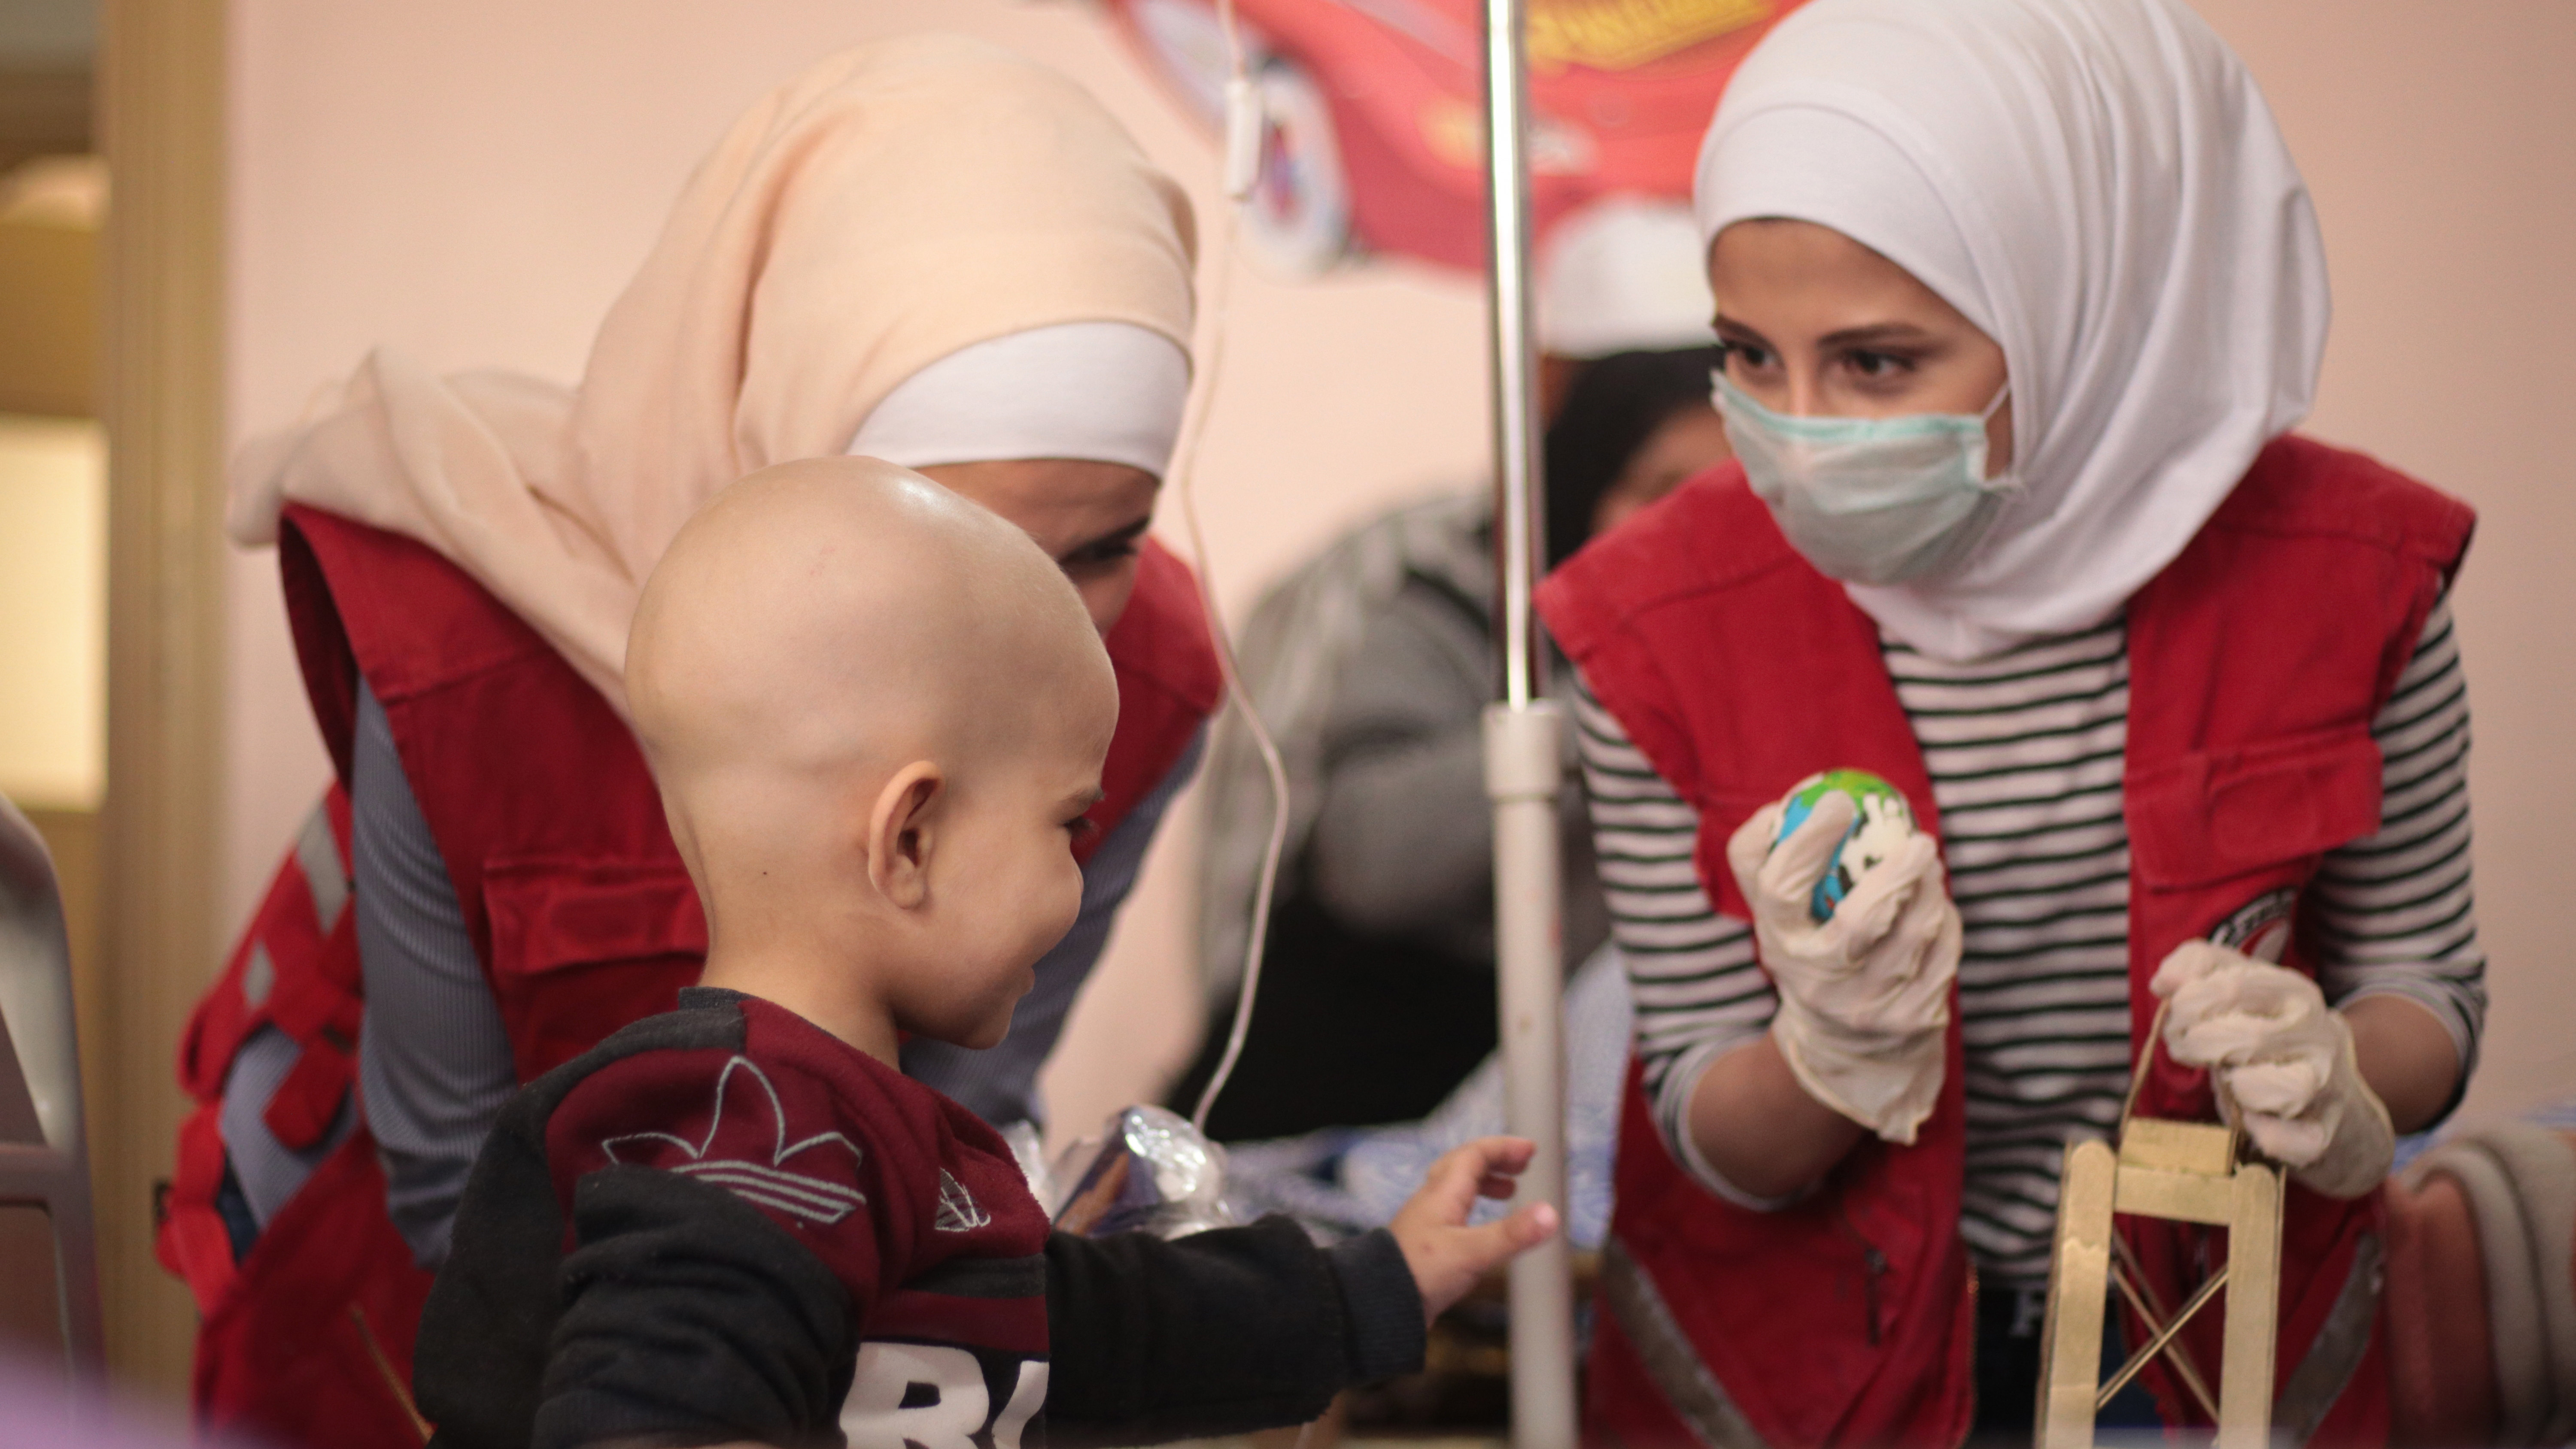 Volunteers provide support to children at Aleppo University Hospital